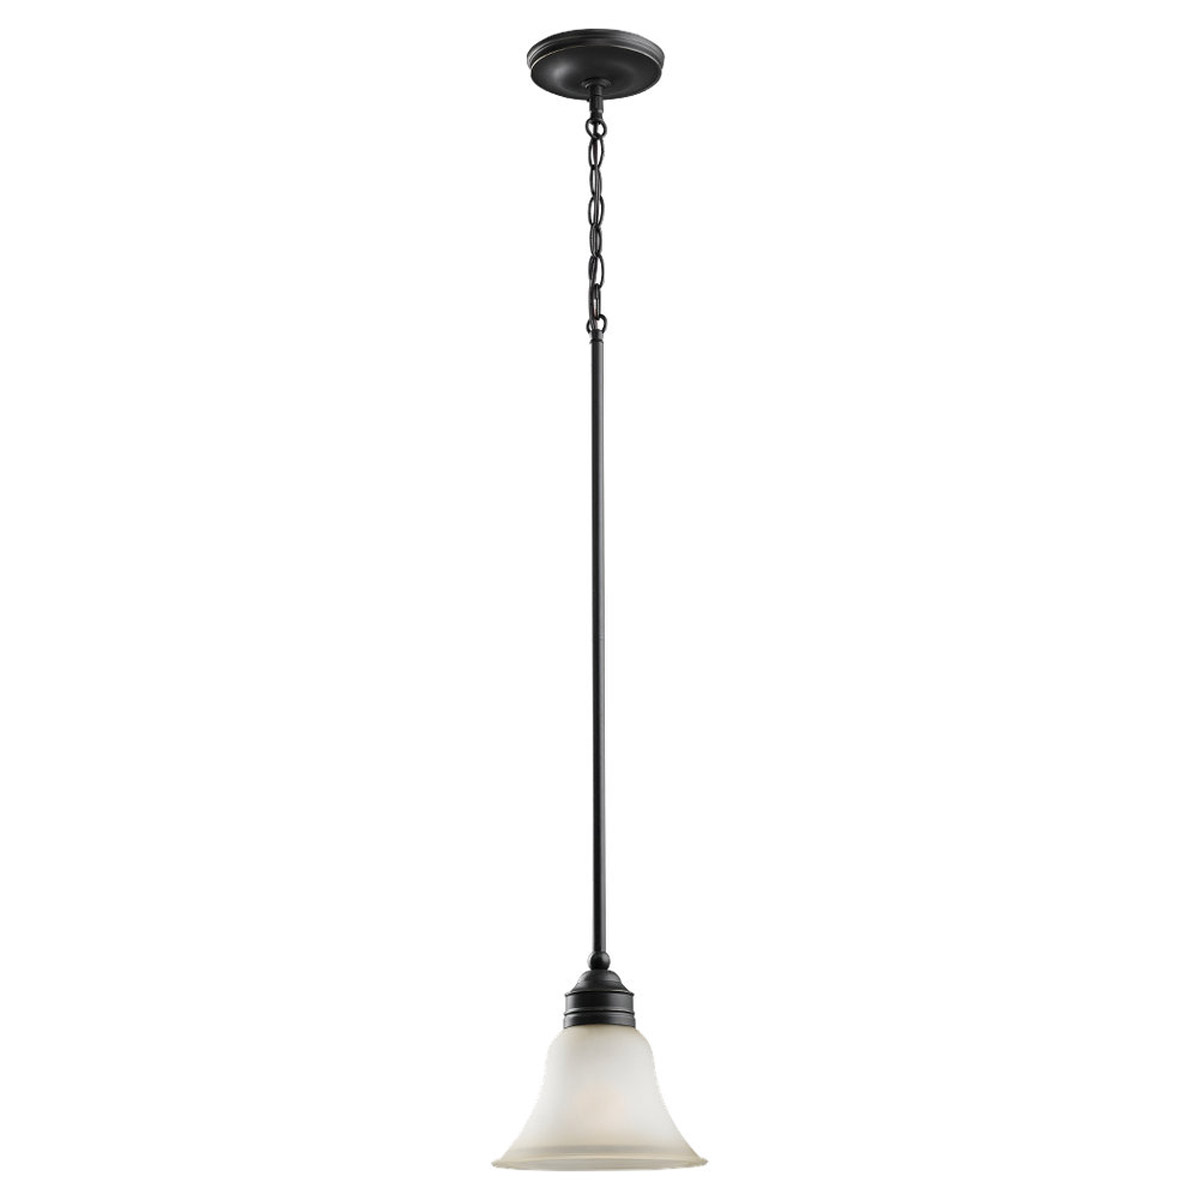 Sea Gull Lighting Gladstone 1 Light Mini Pendant in Heirloom Bronze 61850BLE-782 photo